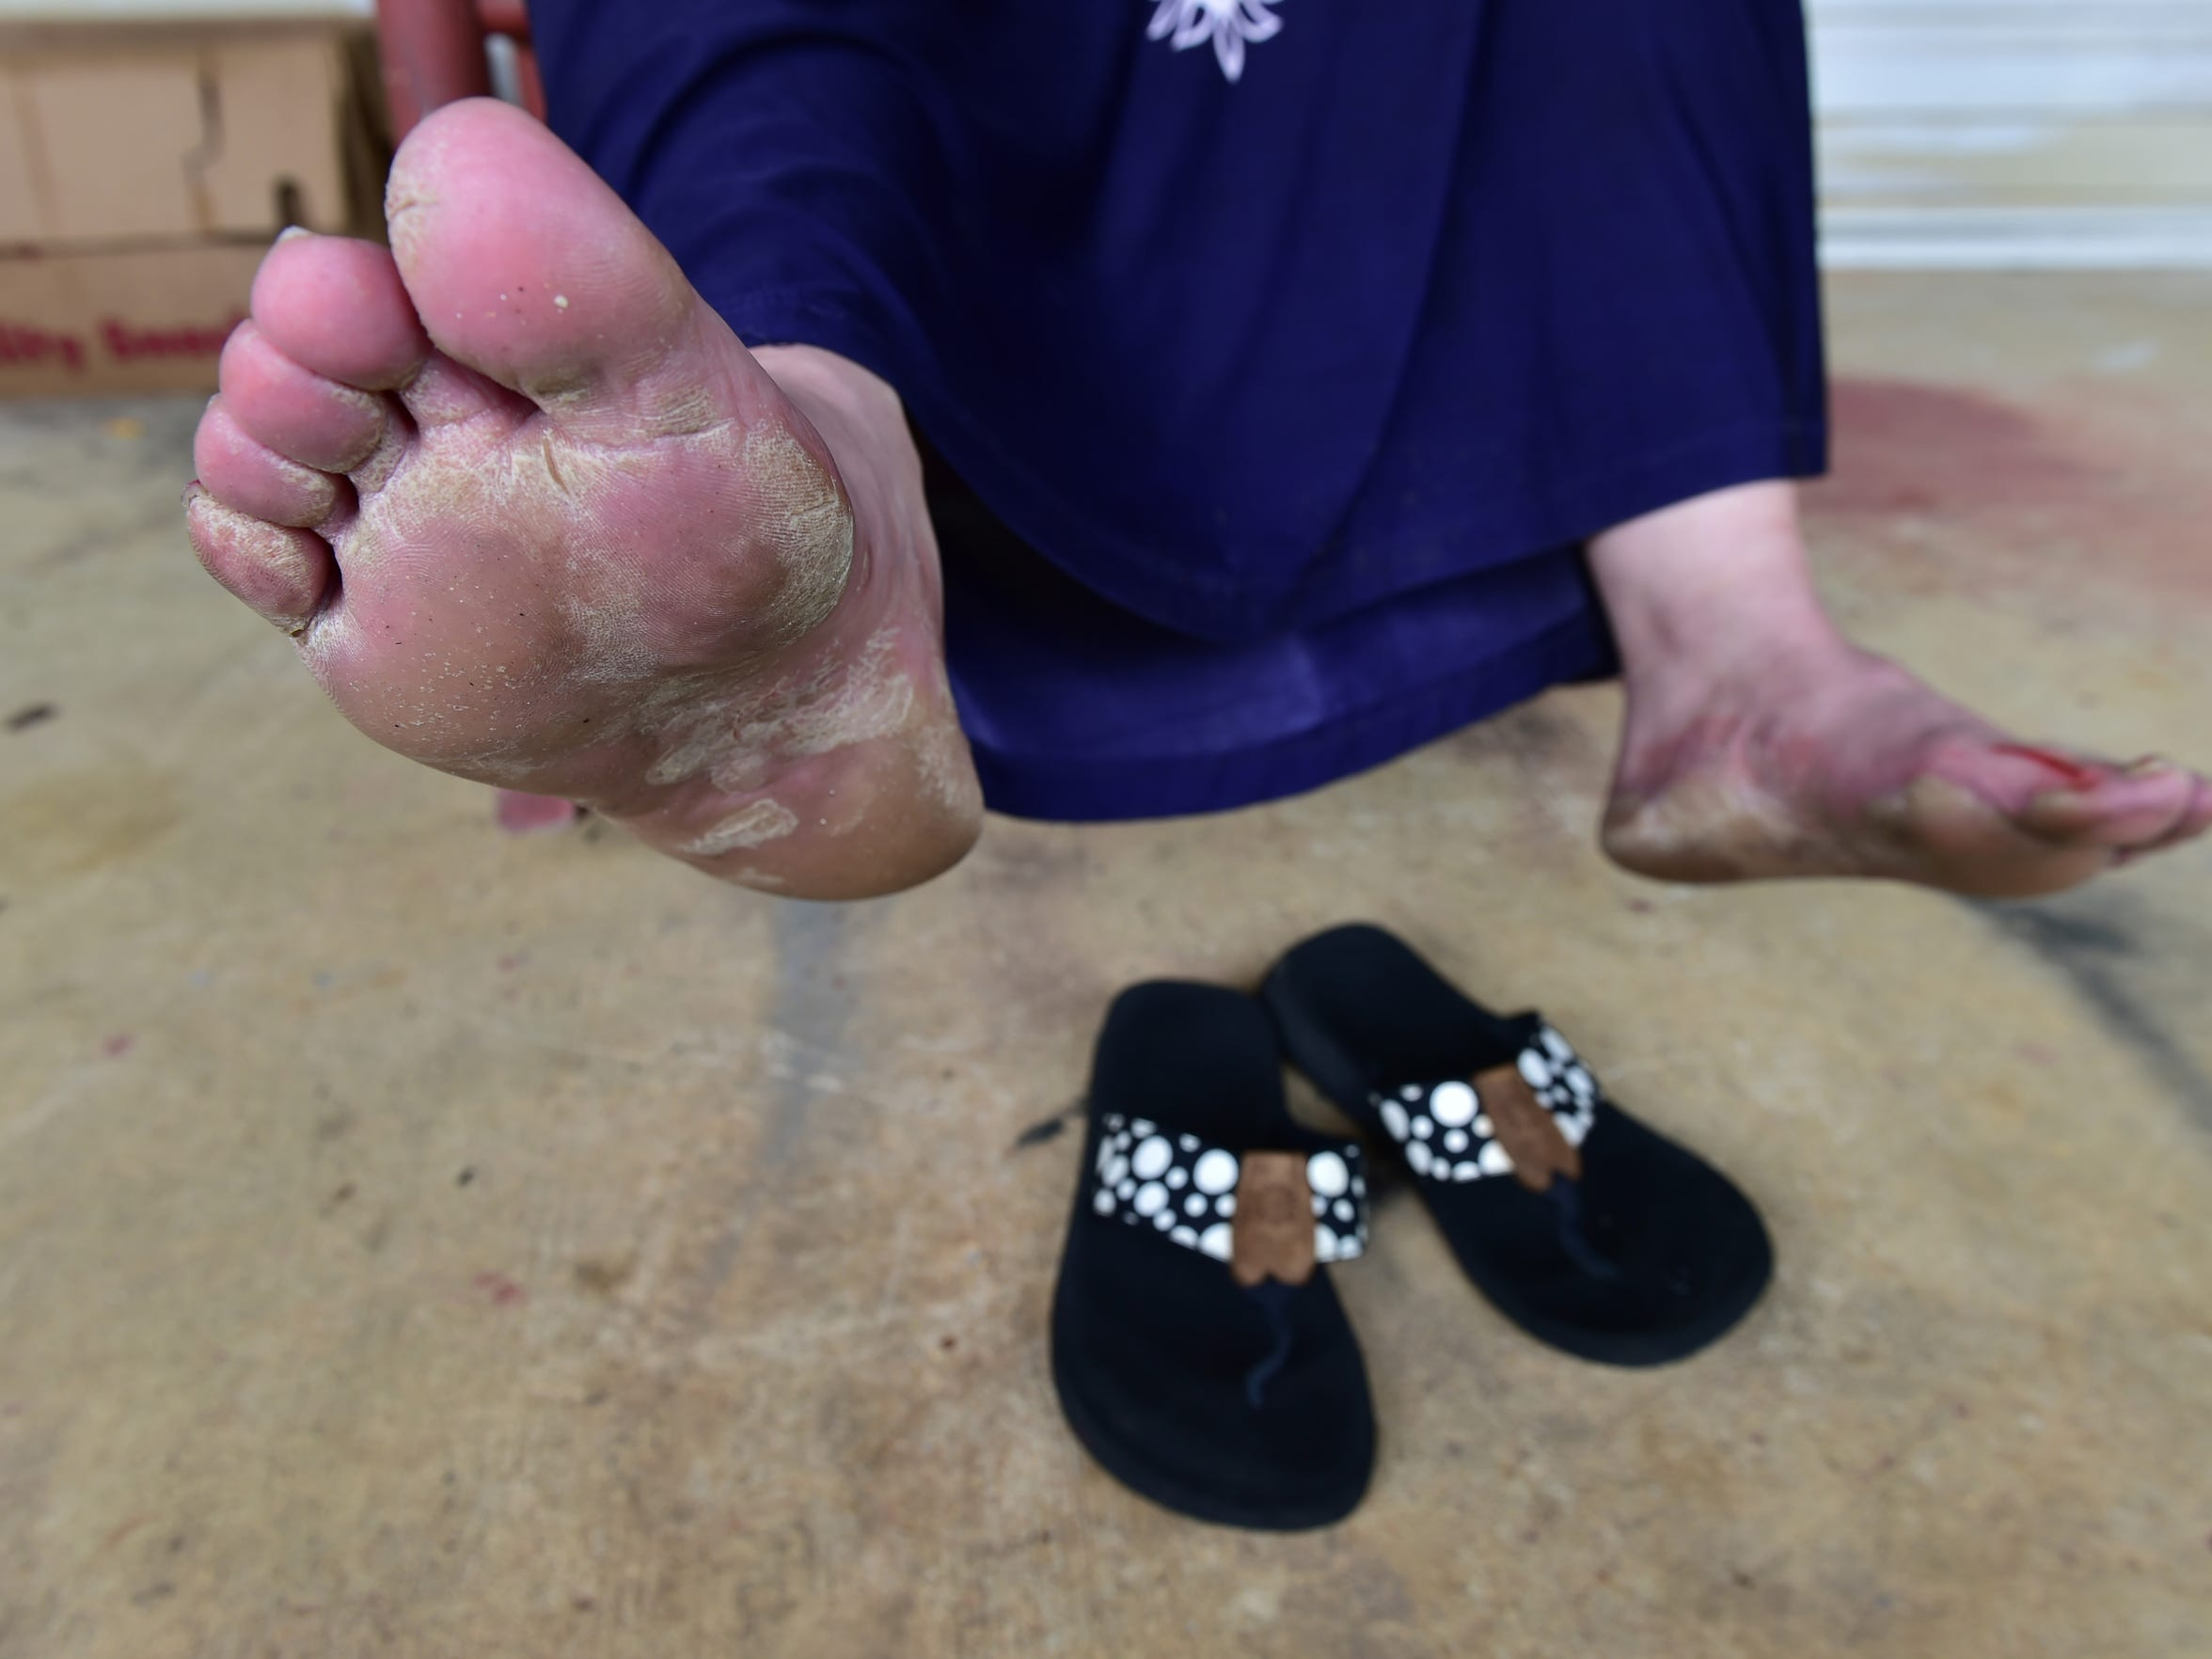 Mary Jean Pettit shows her feet, which suffer the brunt of an undiagnosed illness. Without regular work or disability status, she said she cannot afford to go to see a doctor.